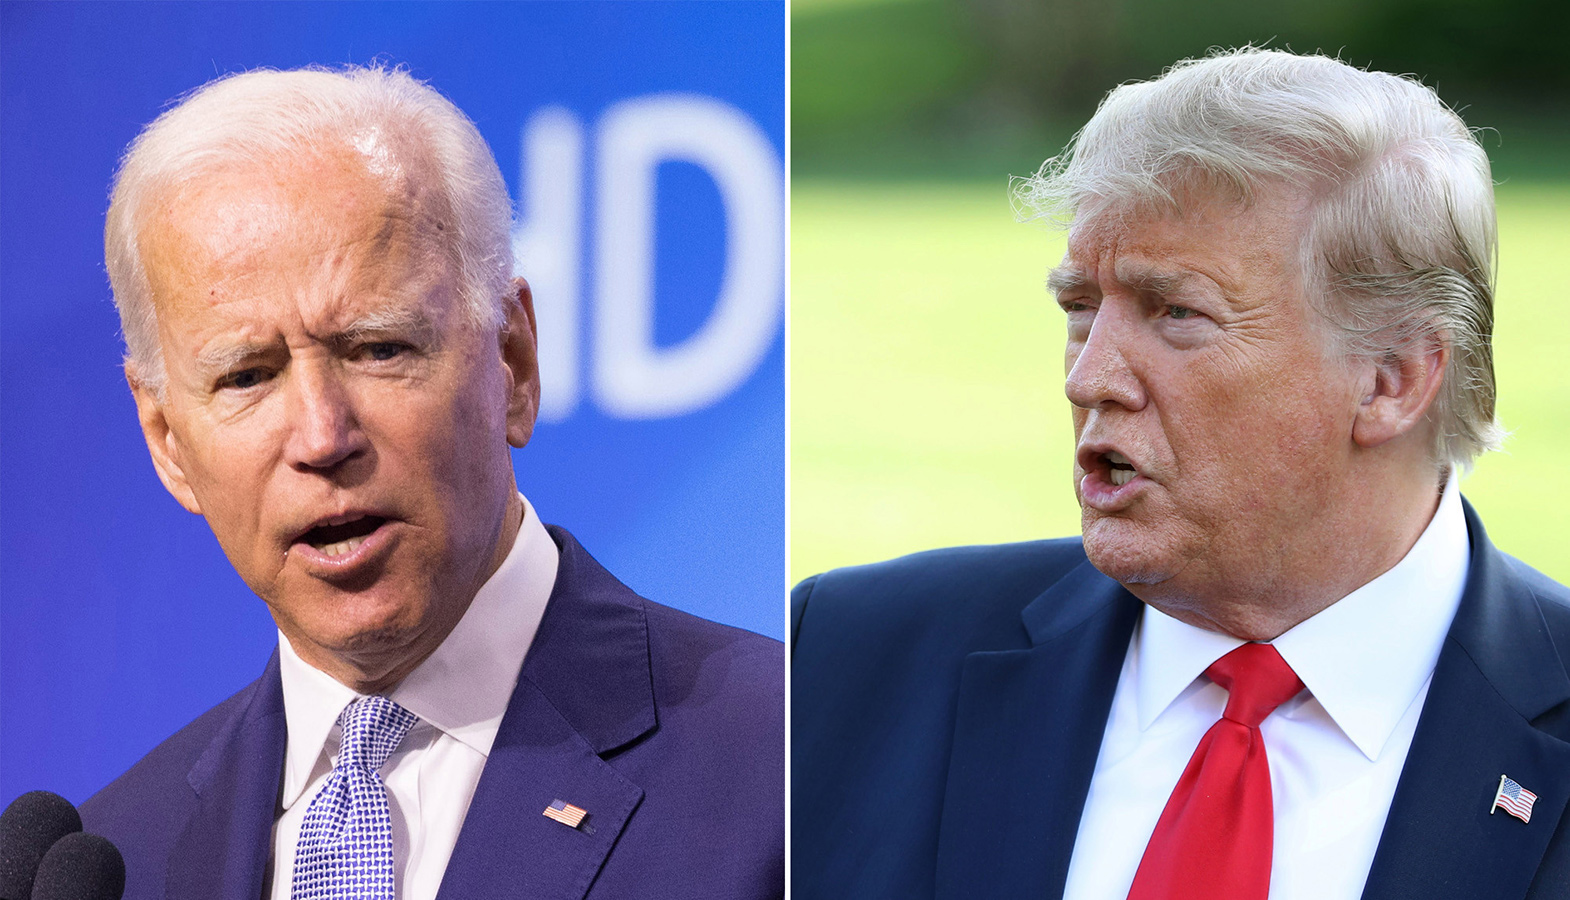 WSJ/NBC Survey: Joe Biden Is 8% Ahead Of Donald Trump